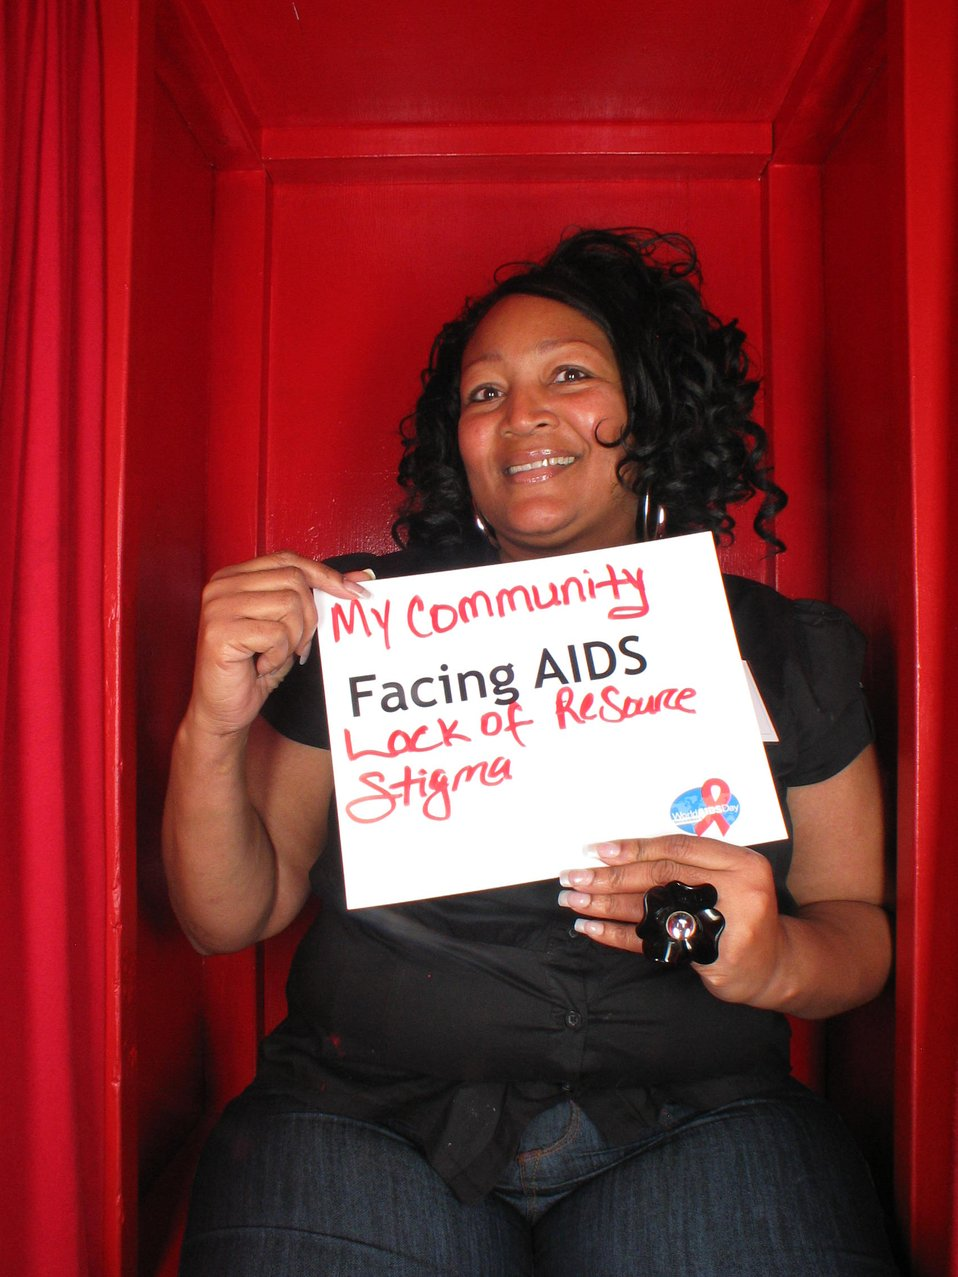 My community is Facing AIDS lack of resources and stigma.